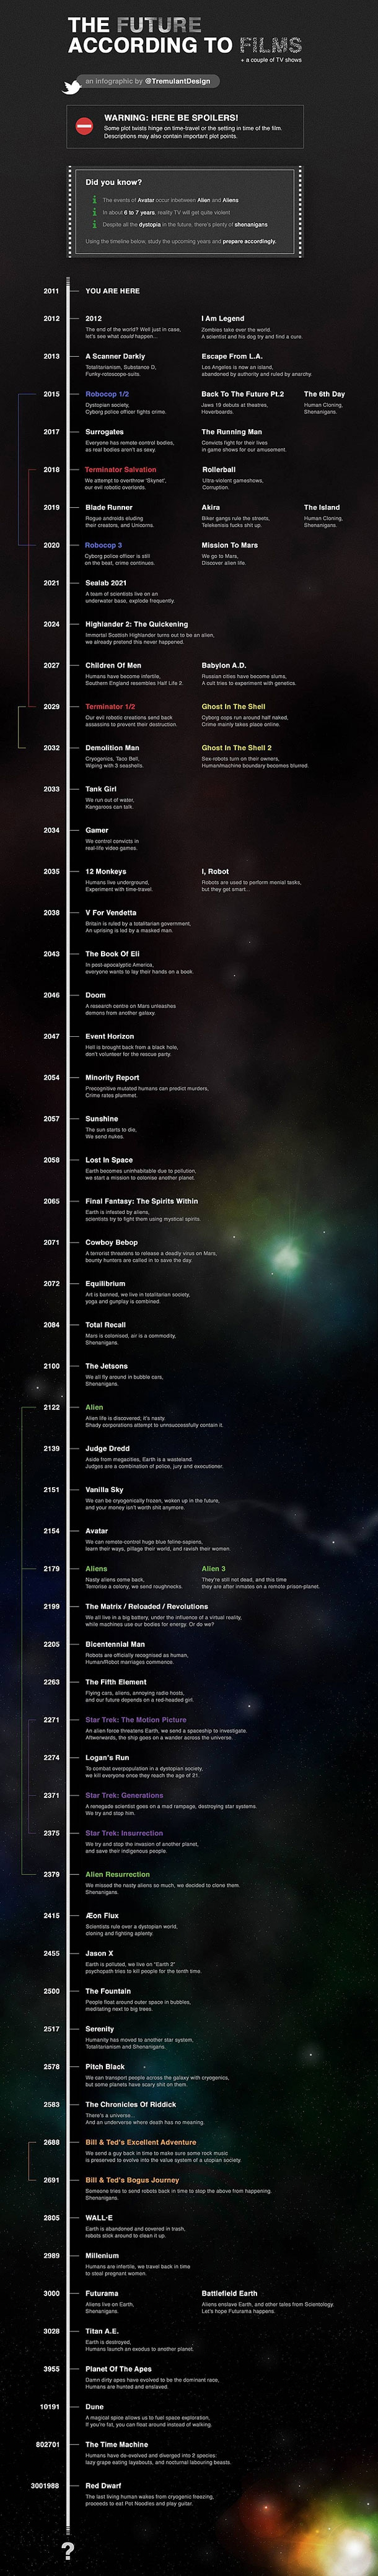 Future According To Sci-Fi Films Infographic